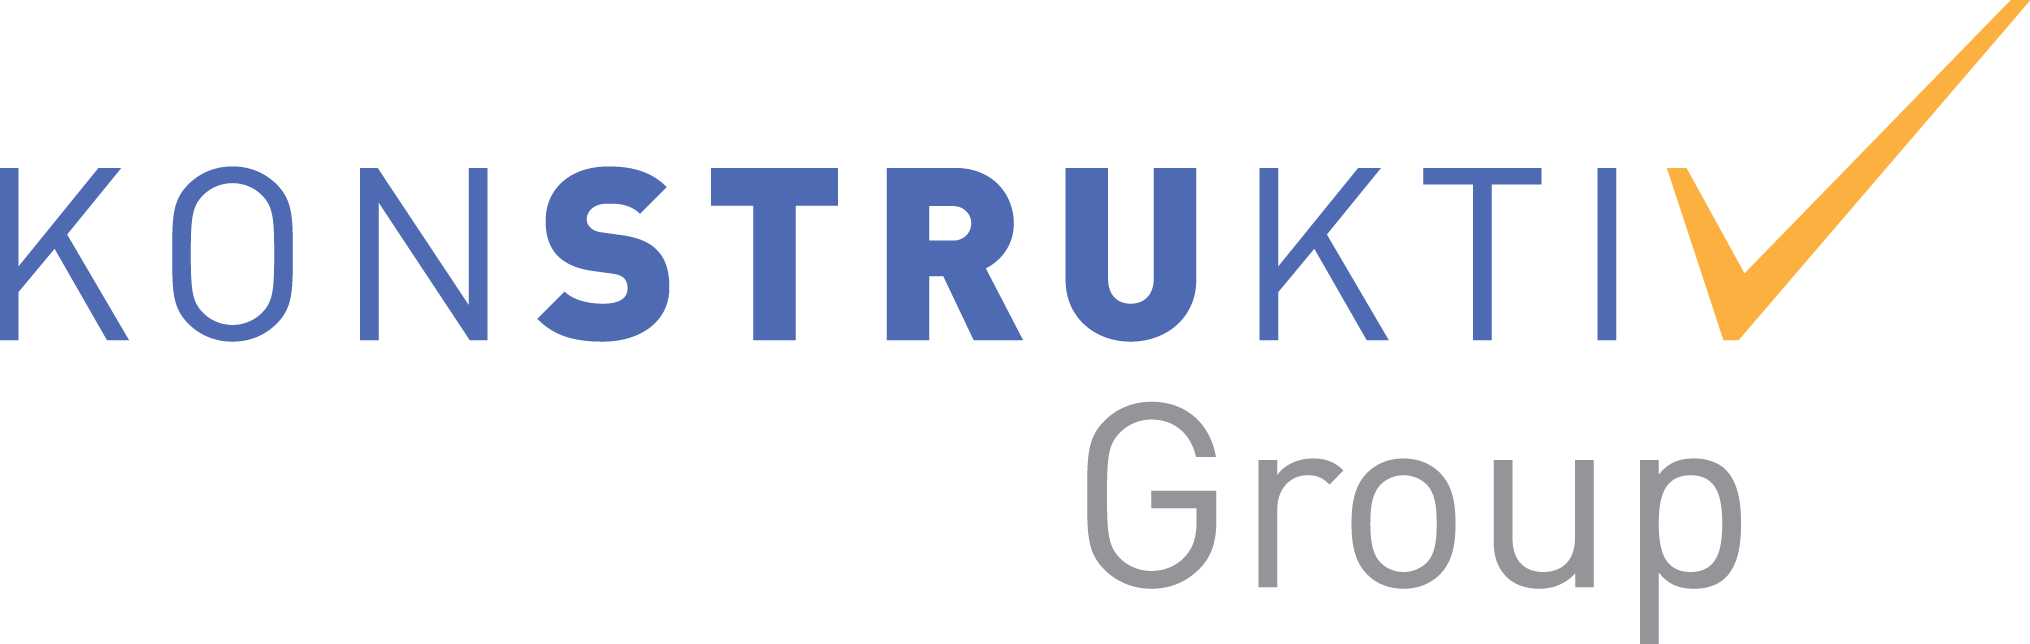 Konstruktiv Group